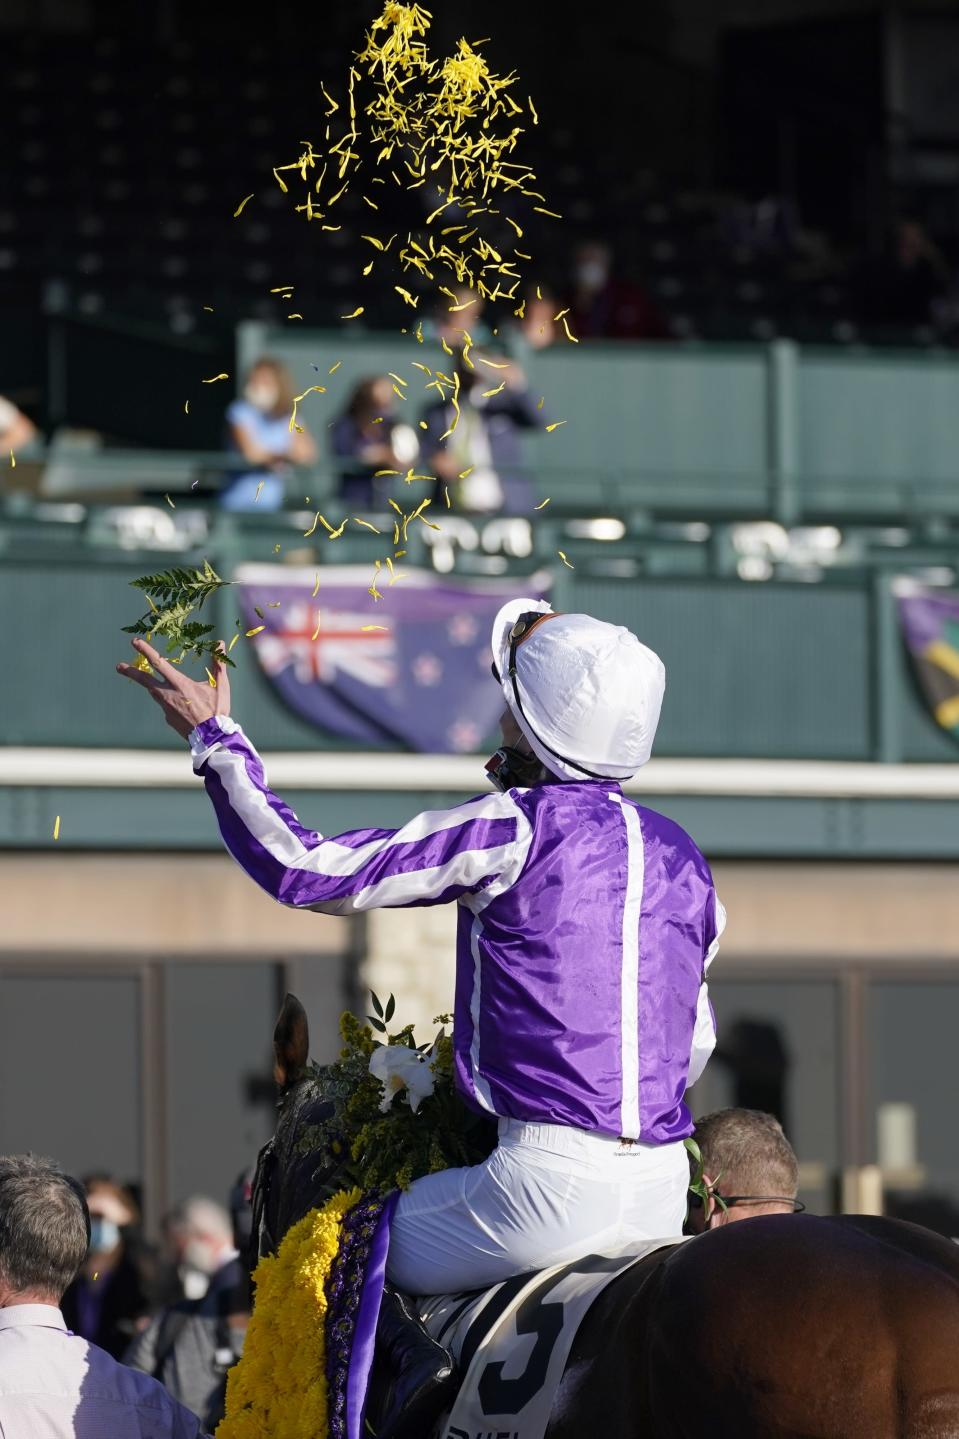 Pierre-Charles Boudot tosses flower pedals in the air in celebration after riding Order of Australia to win the Breeders' Cup Mile horse race at Keeneland Race Course, in Lexington, Ky., Saturday, Nov. 7, 2020. (AP Photo/Darron Cummings)